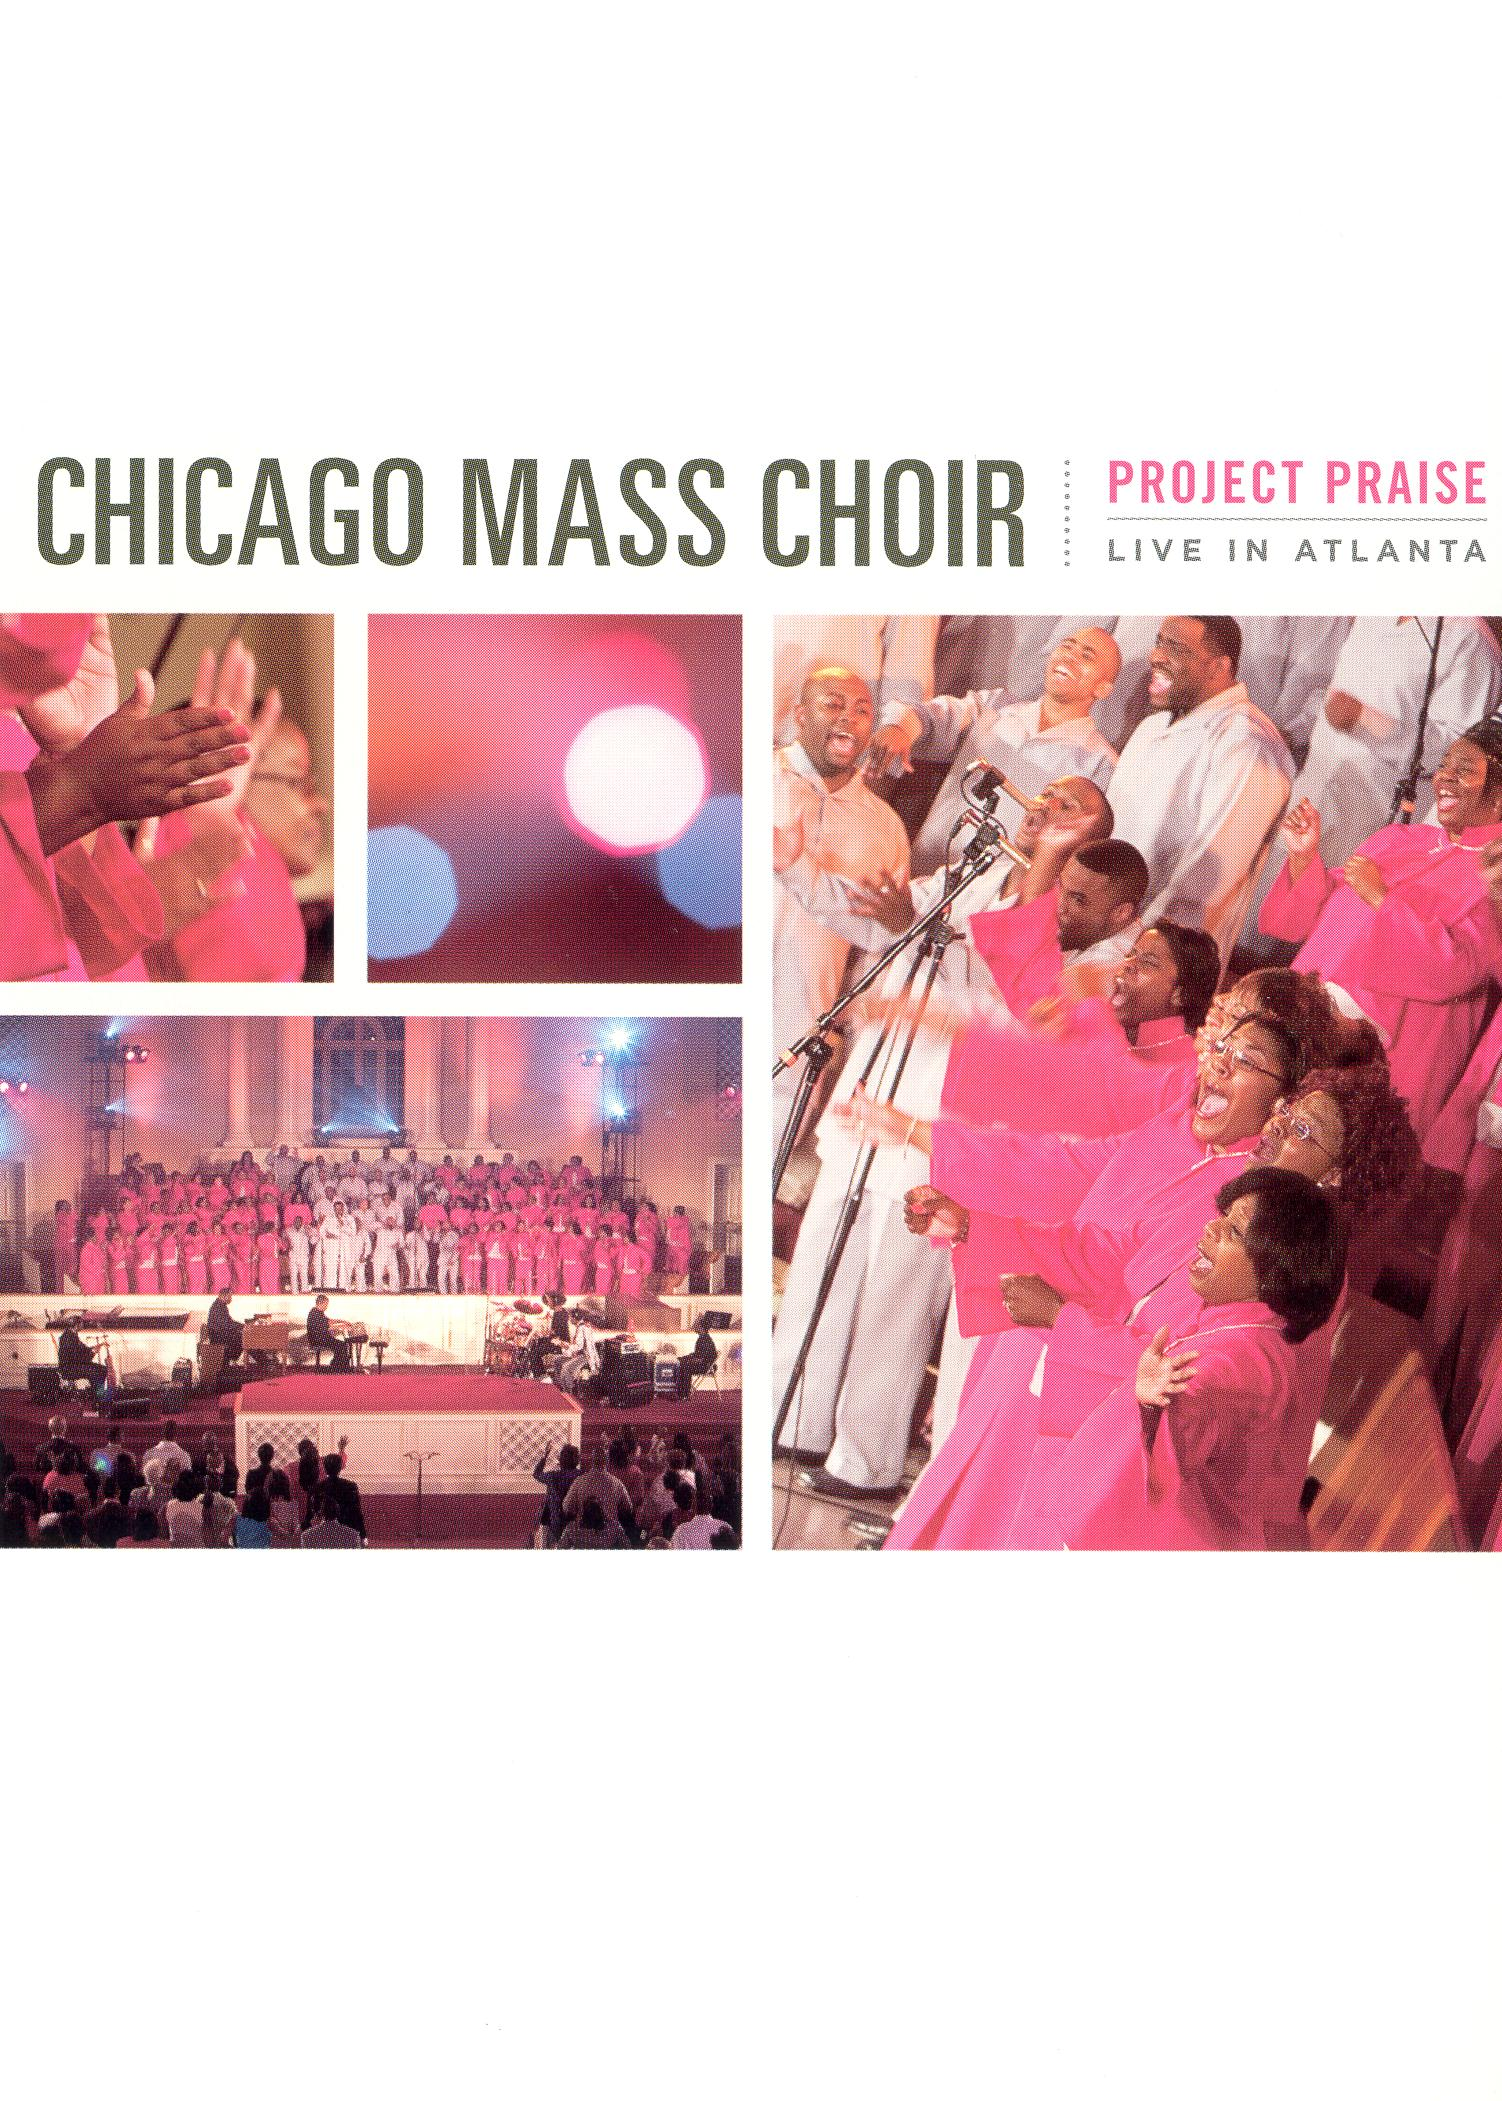 Chicago Mass Choir: Project Praise - Live in Atlanta